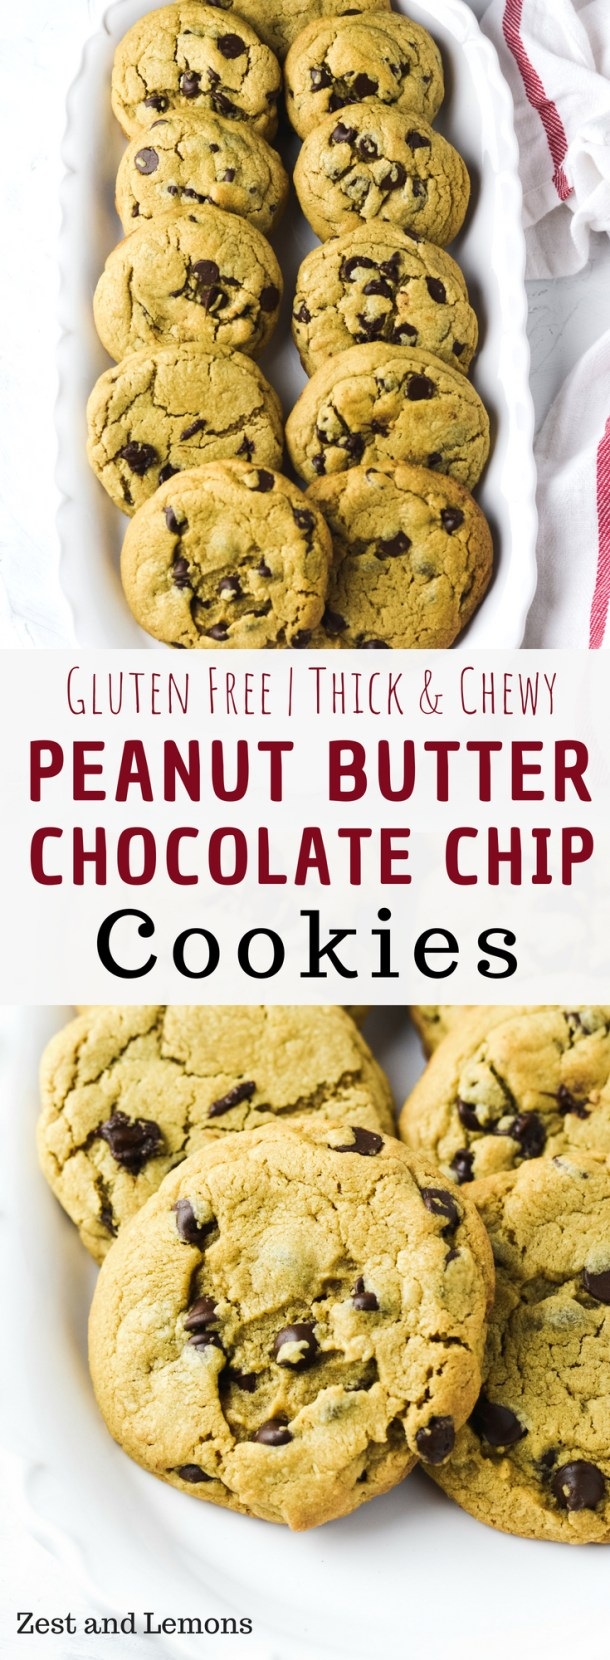 Thick and chewy gluten free peanut butter chocolate chip cookies - Zest and Lemons #glutenfreecookies